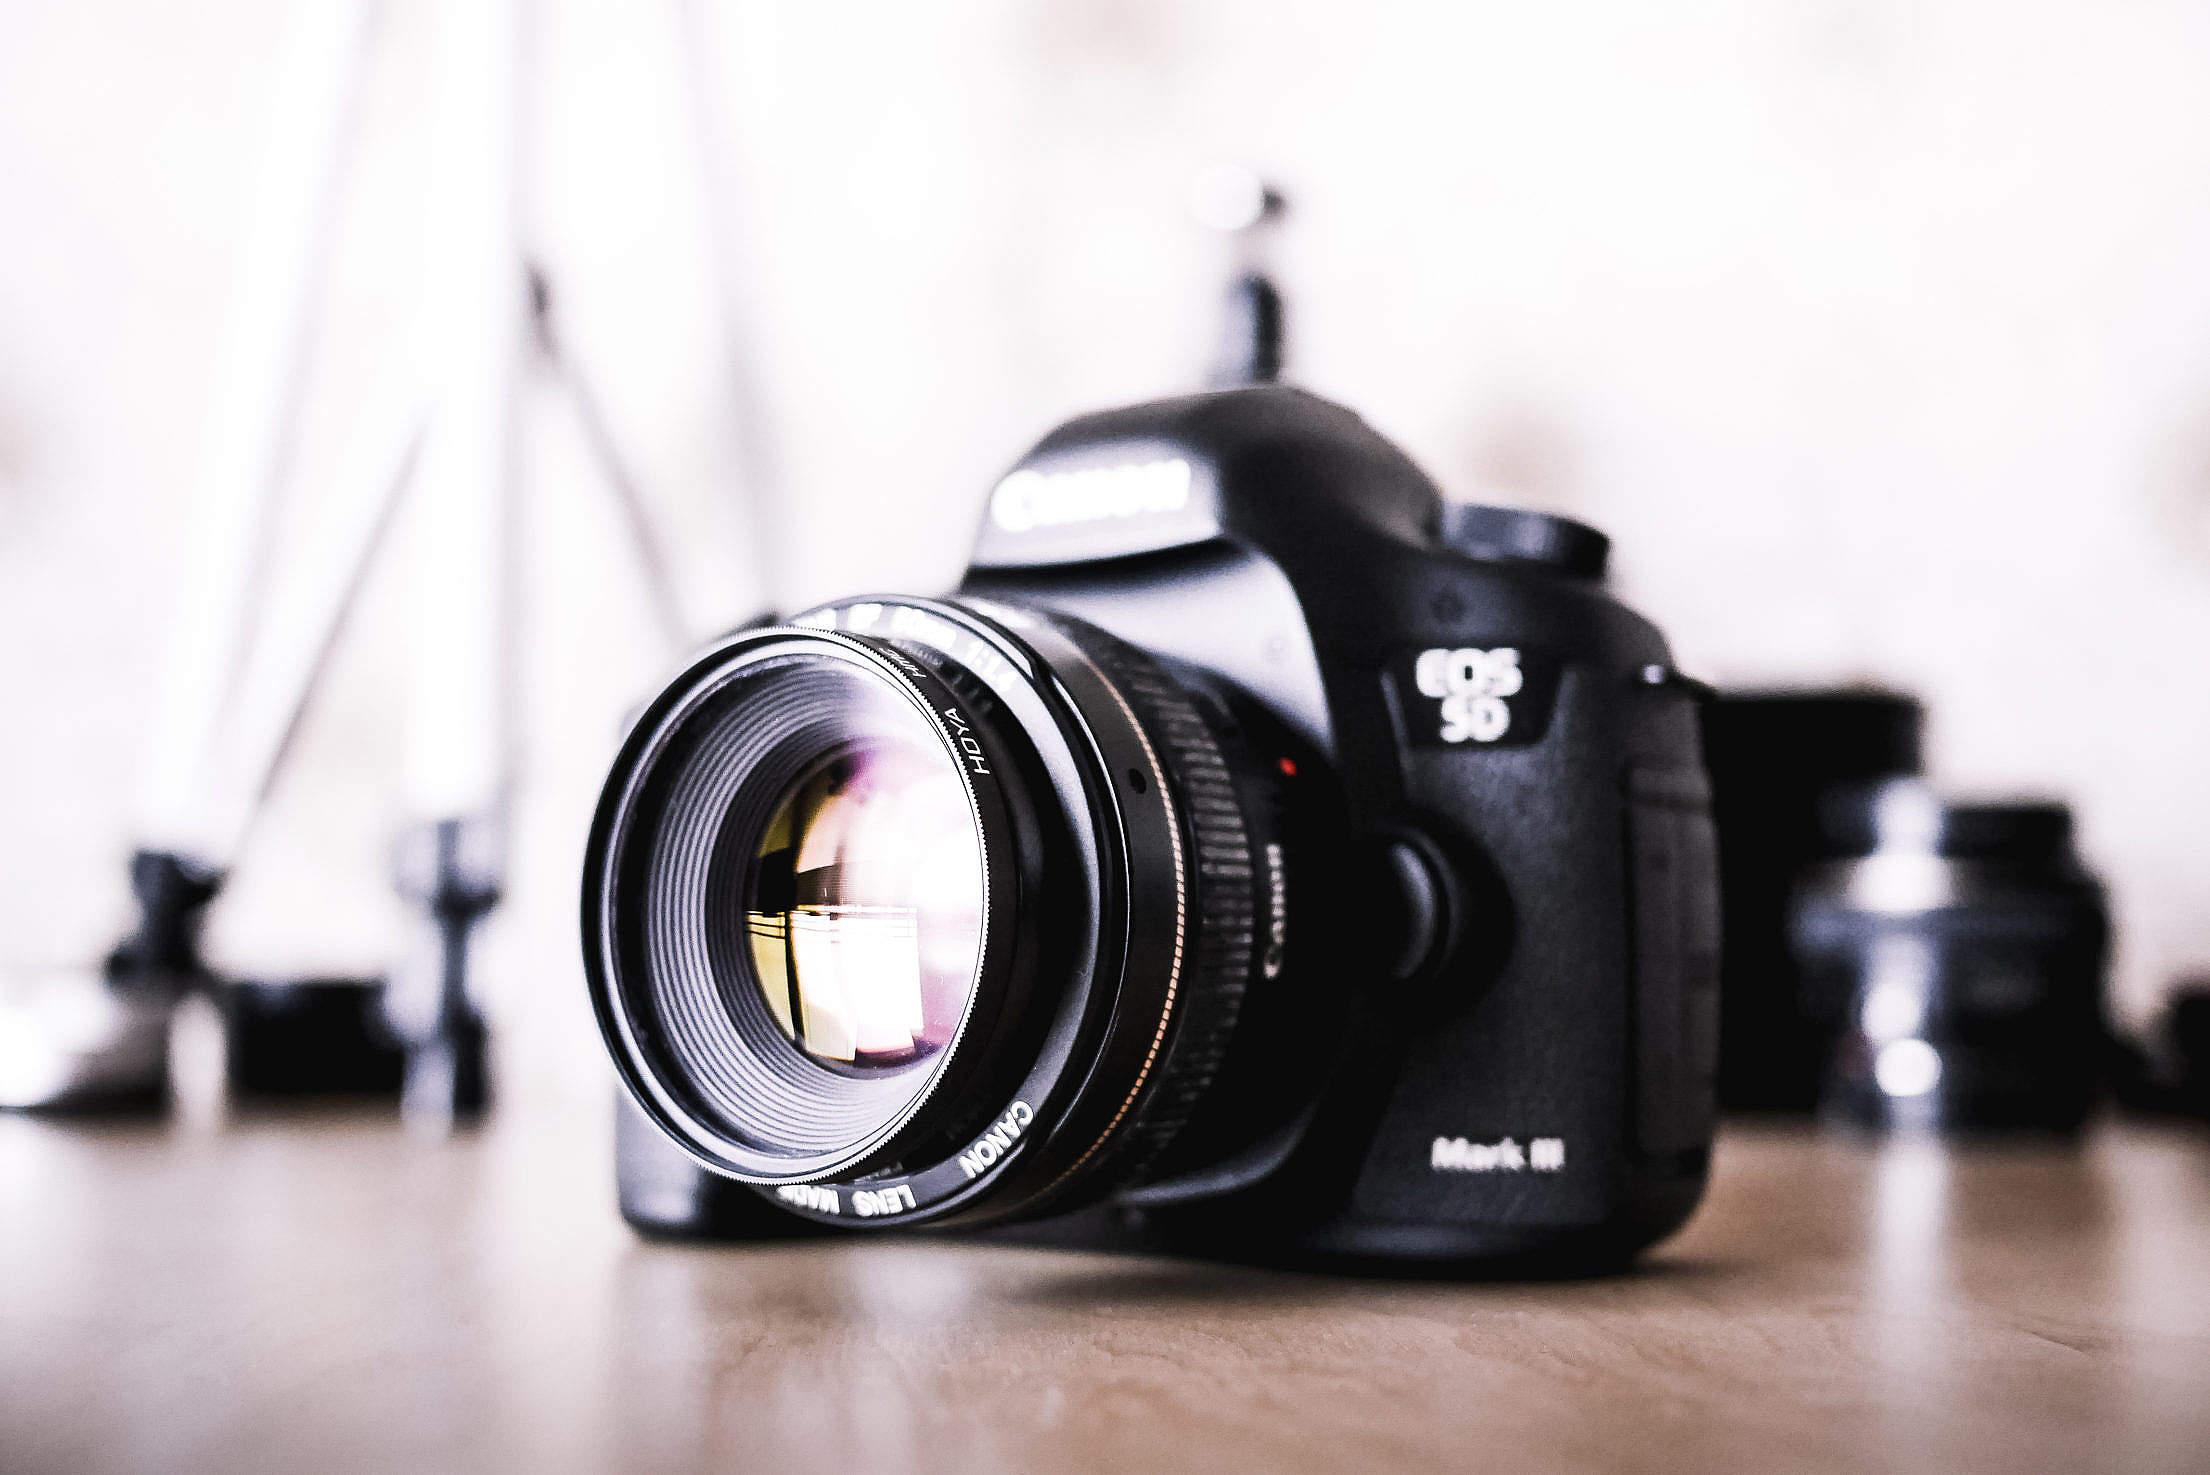 Big DSLR Camera and Equipment Free Stock Photo